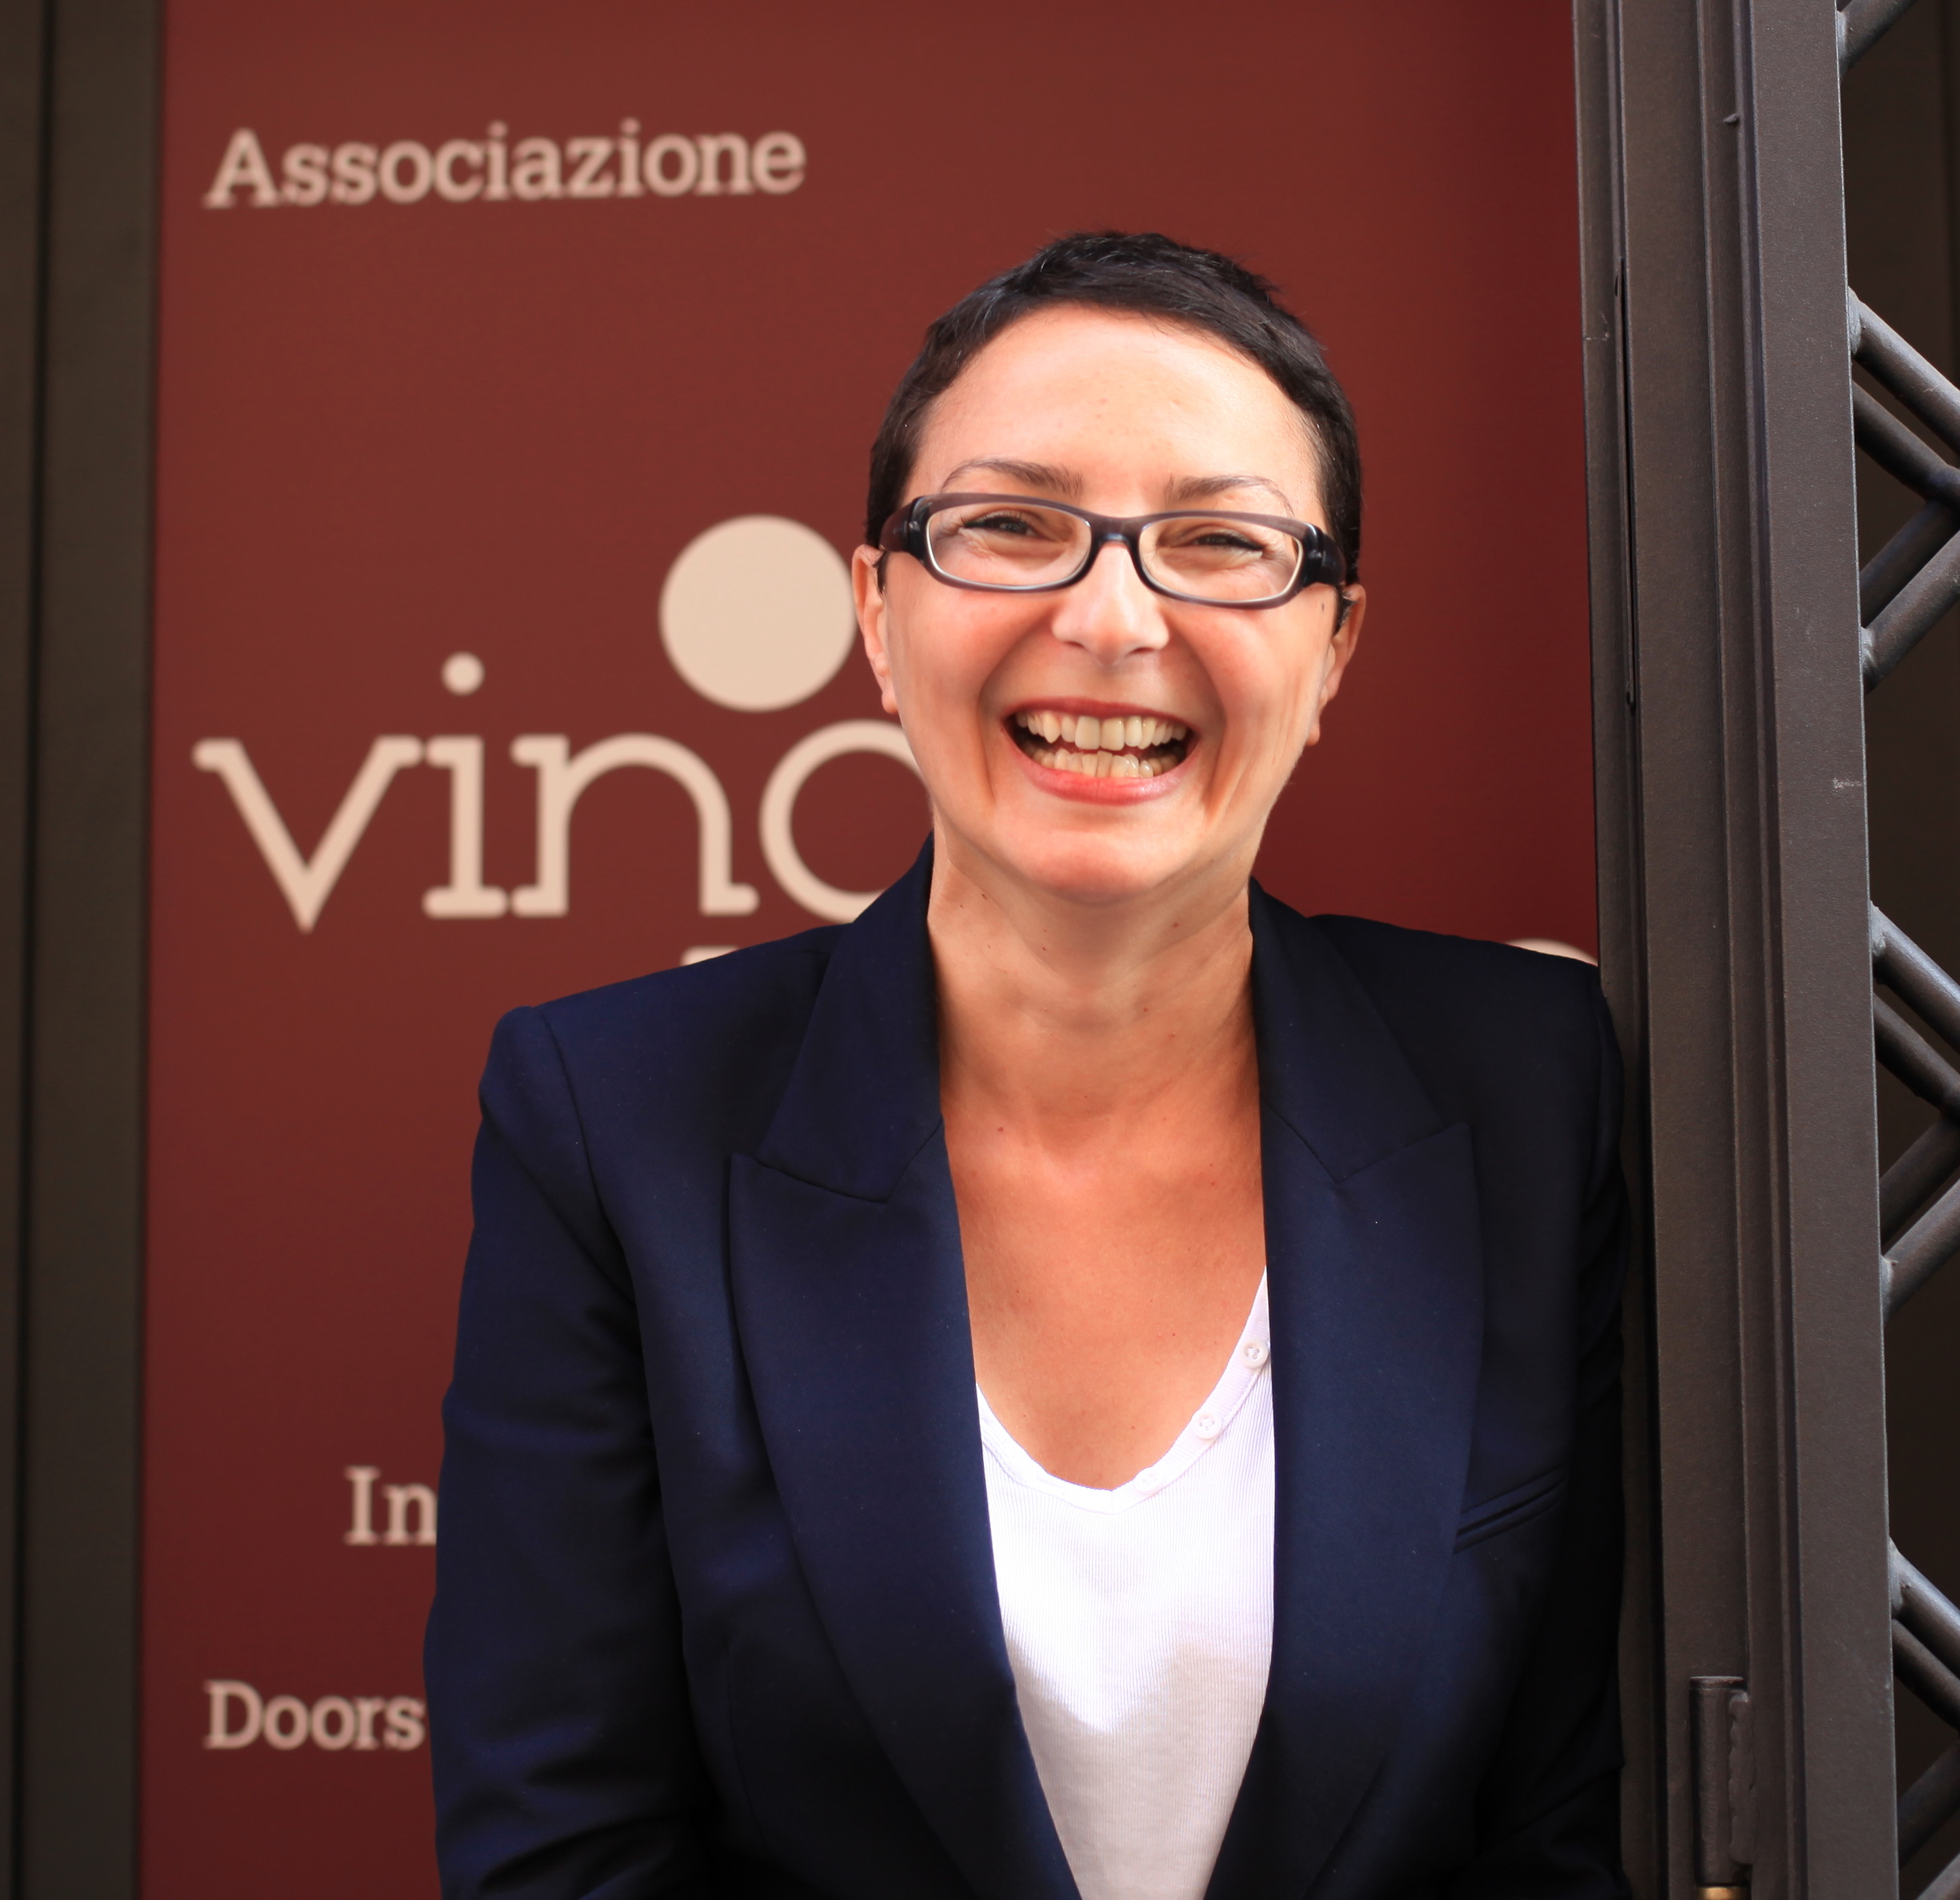 Episode 61: Getting Educated About Italian Wine with Hande Leimer